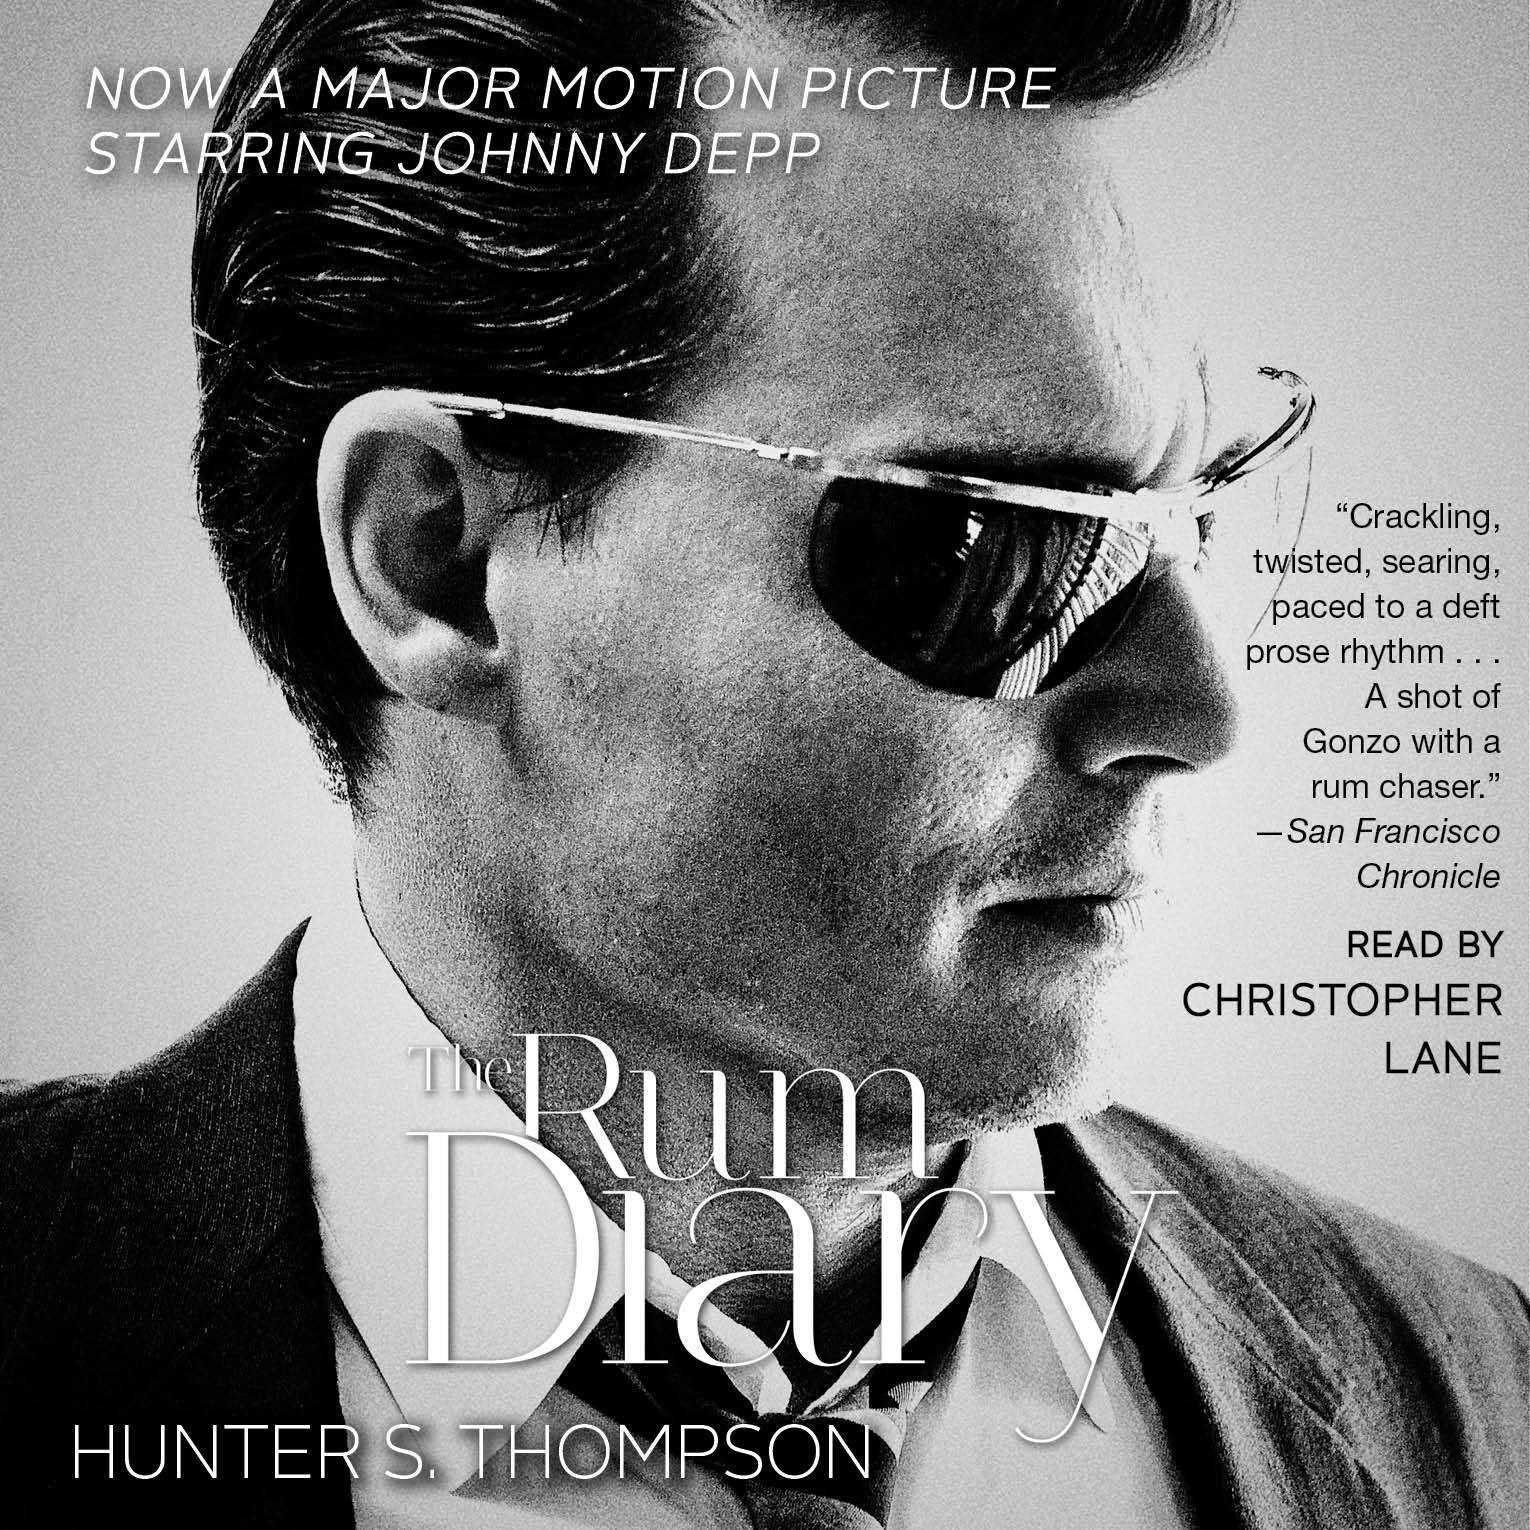 Printable The RUM DIARY: A Novel Audiobook Cover Art